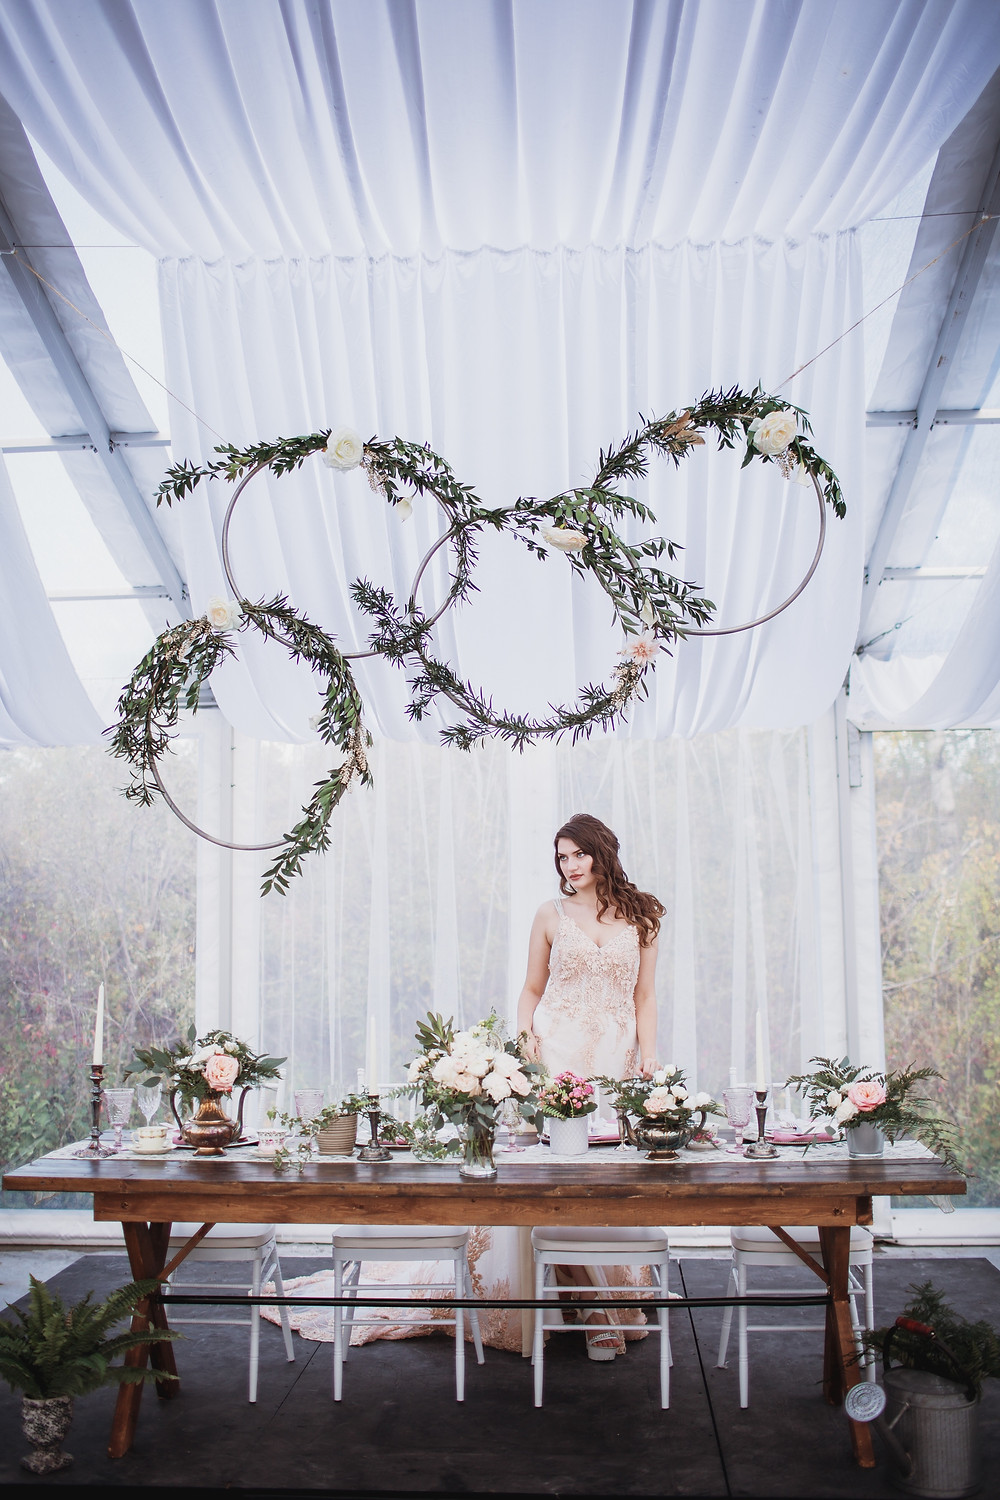 Bride showcases wedding decor and bridal gown.